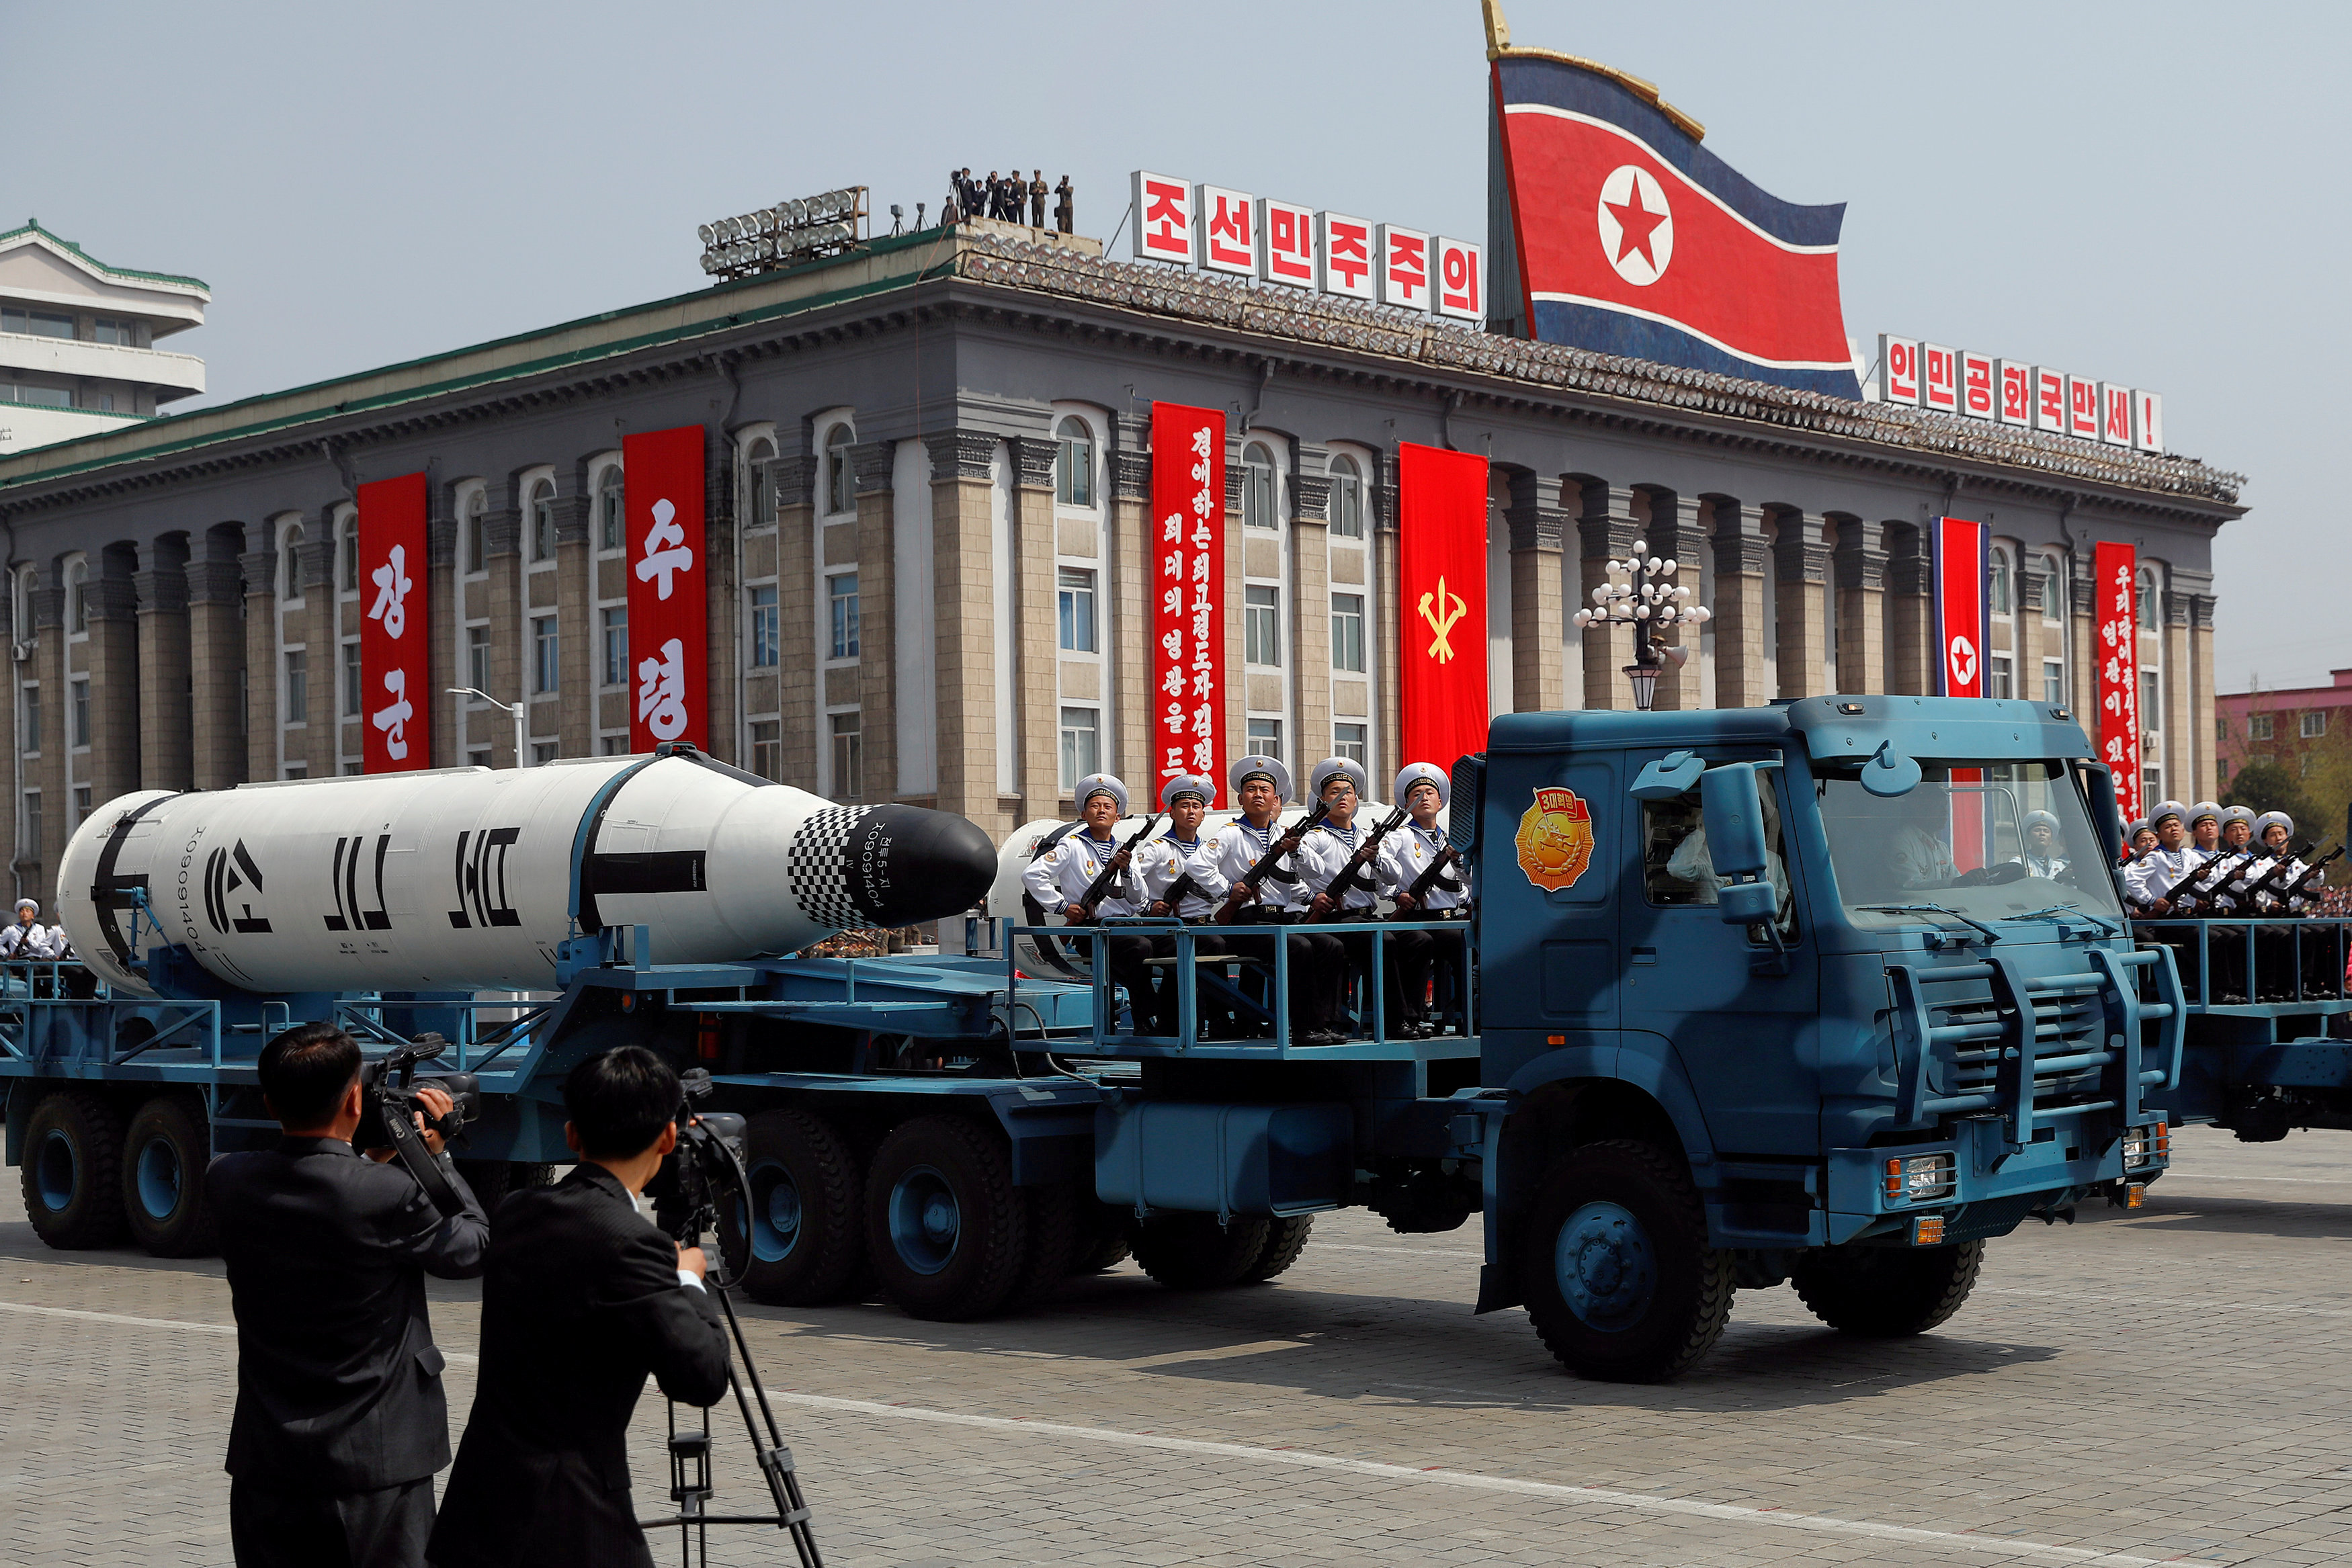 A North Korean navy truck carries the Pukkuksong submarine-launched ballistic missile (SLBM) during a military parade marking the 105th birth anniversary of country's founding father, Kim Il Sung in Pyongyang on April 15. | REUTERS